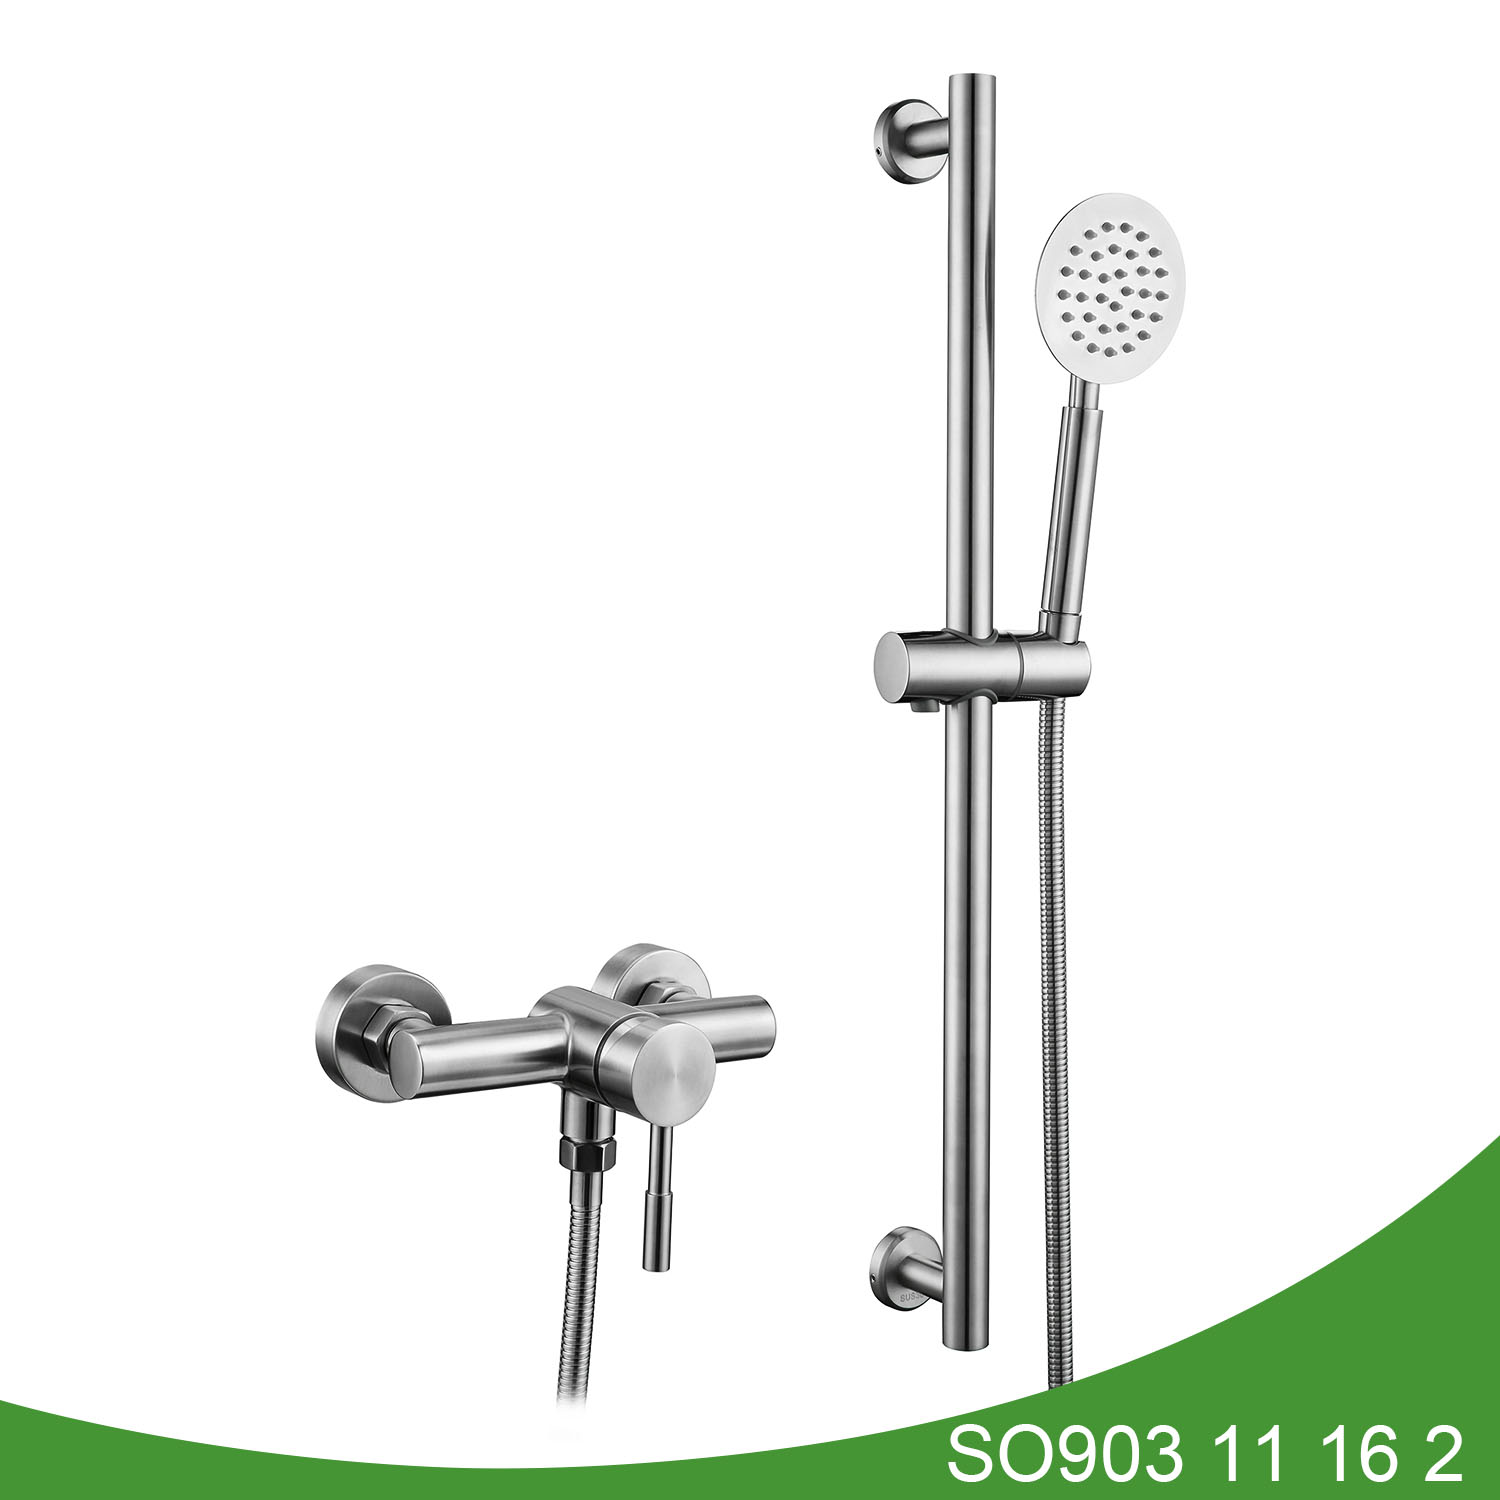 Stainless steel shower mixer SO903 11 16 2